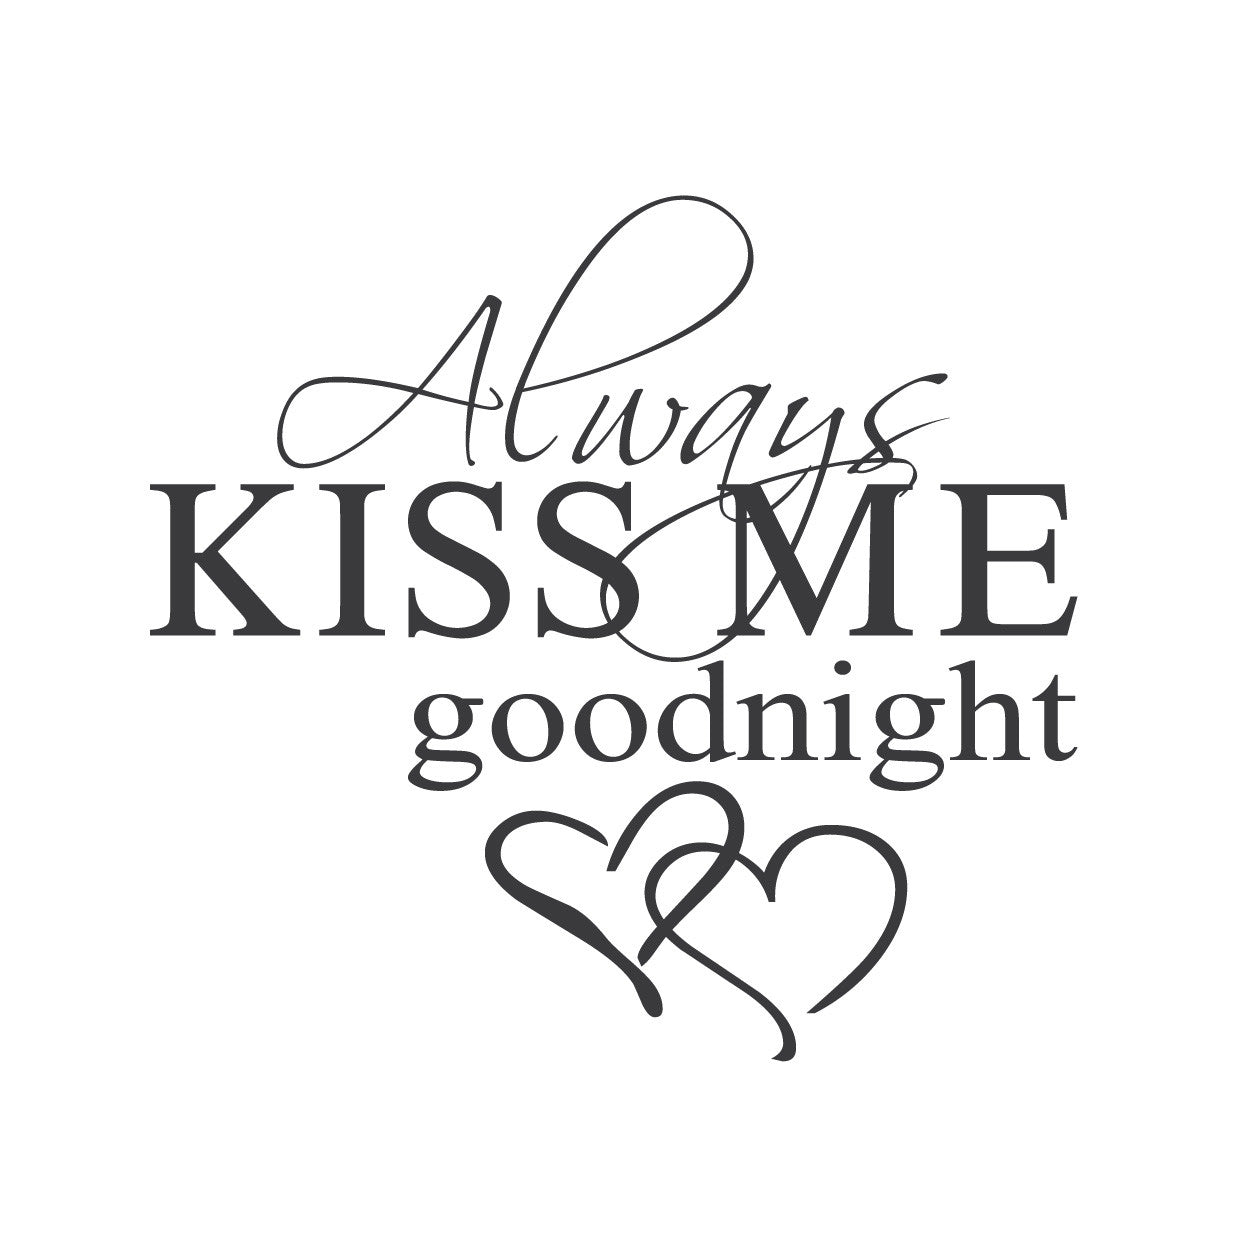 wall quotes wall decals - Always Kiss Me Goodnight | lifestyle